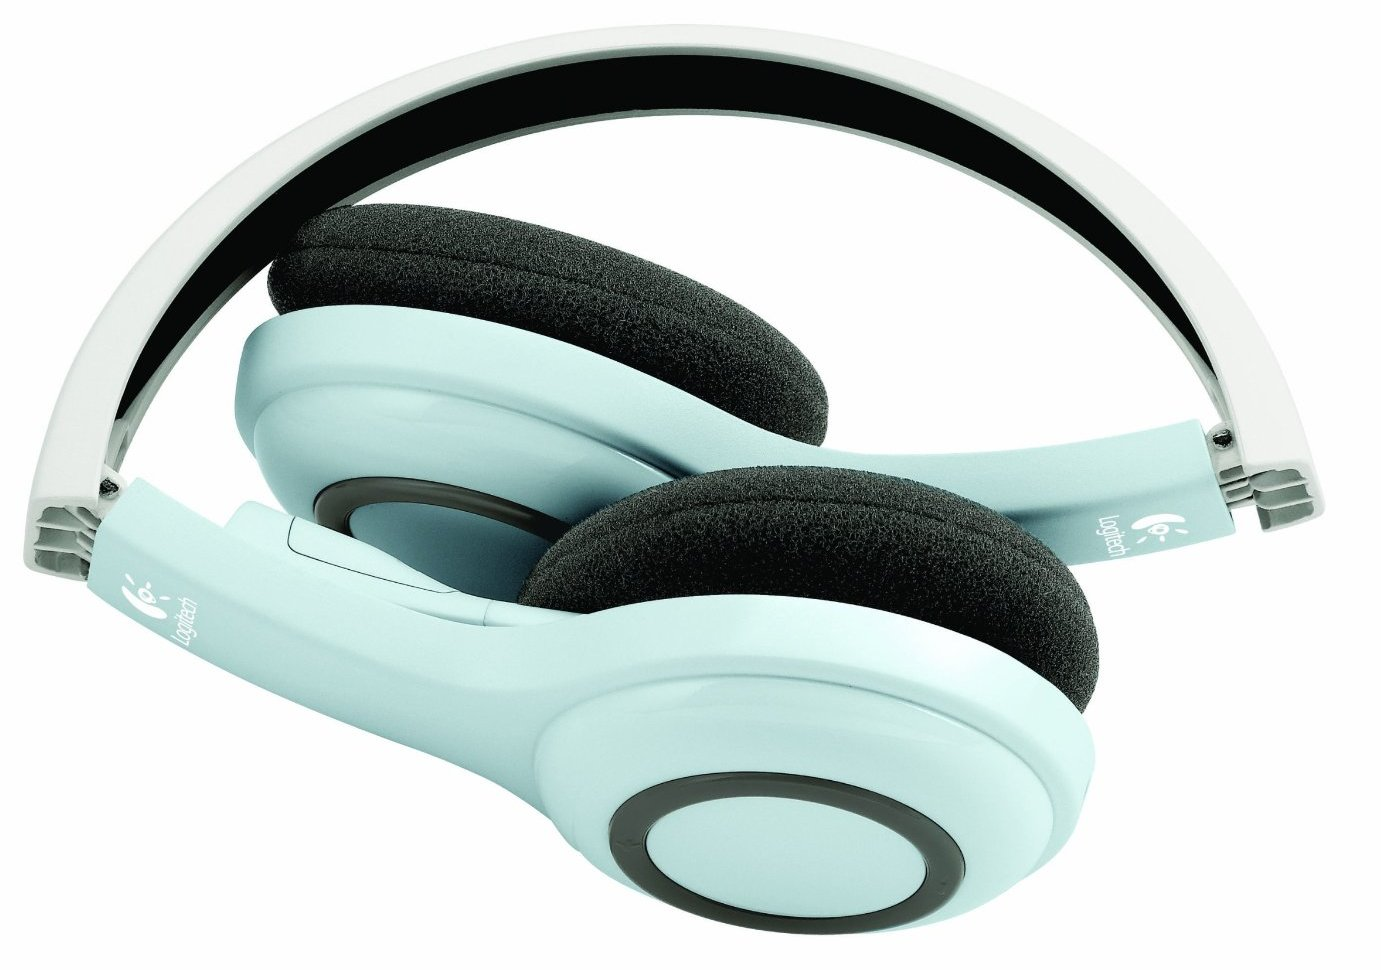 foldable-logitech-bluetooth-headset